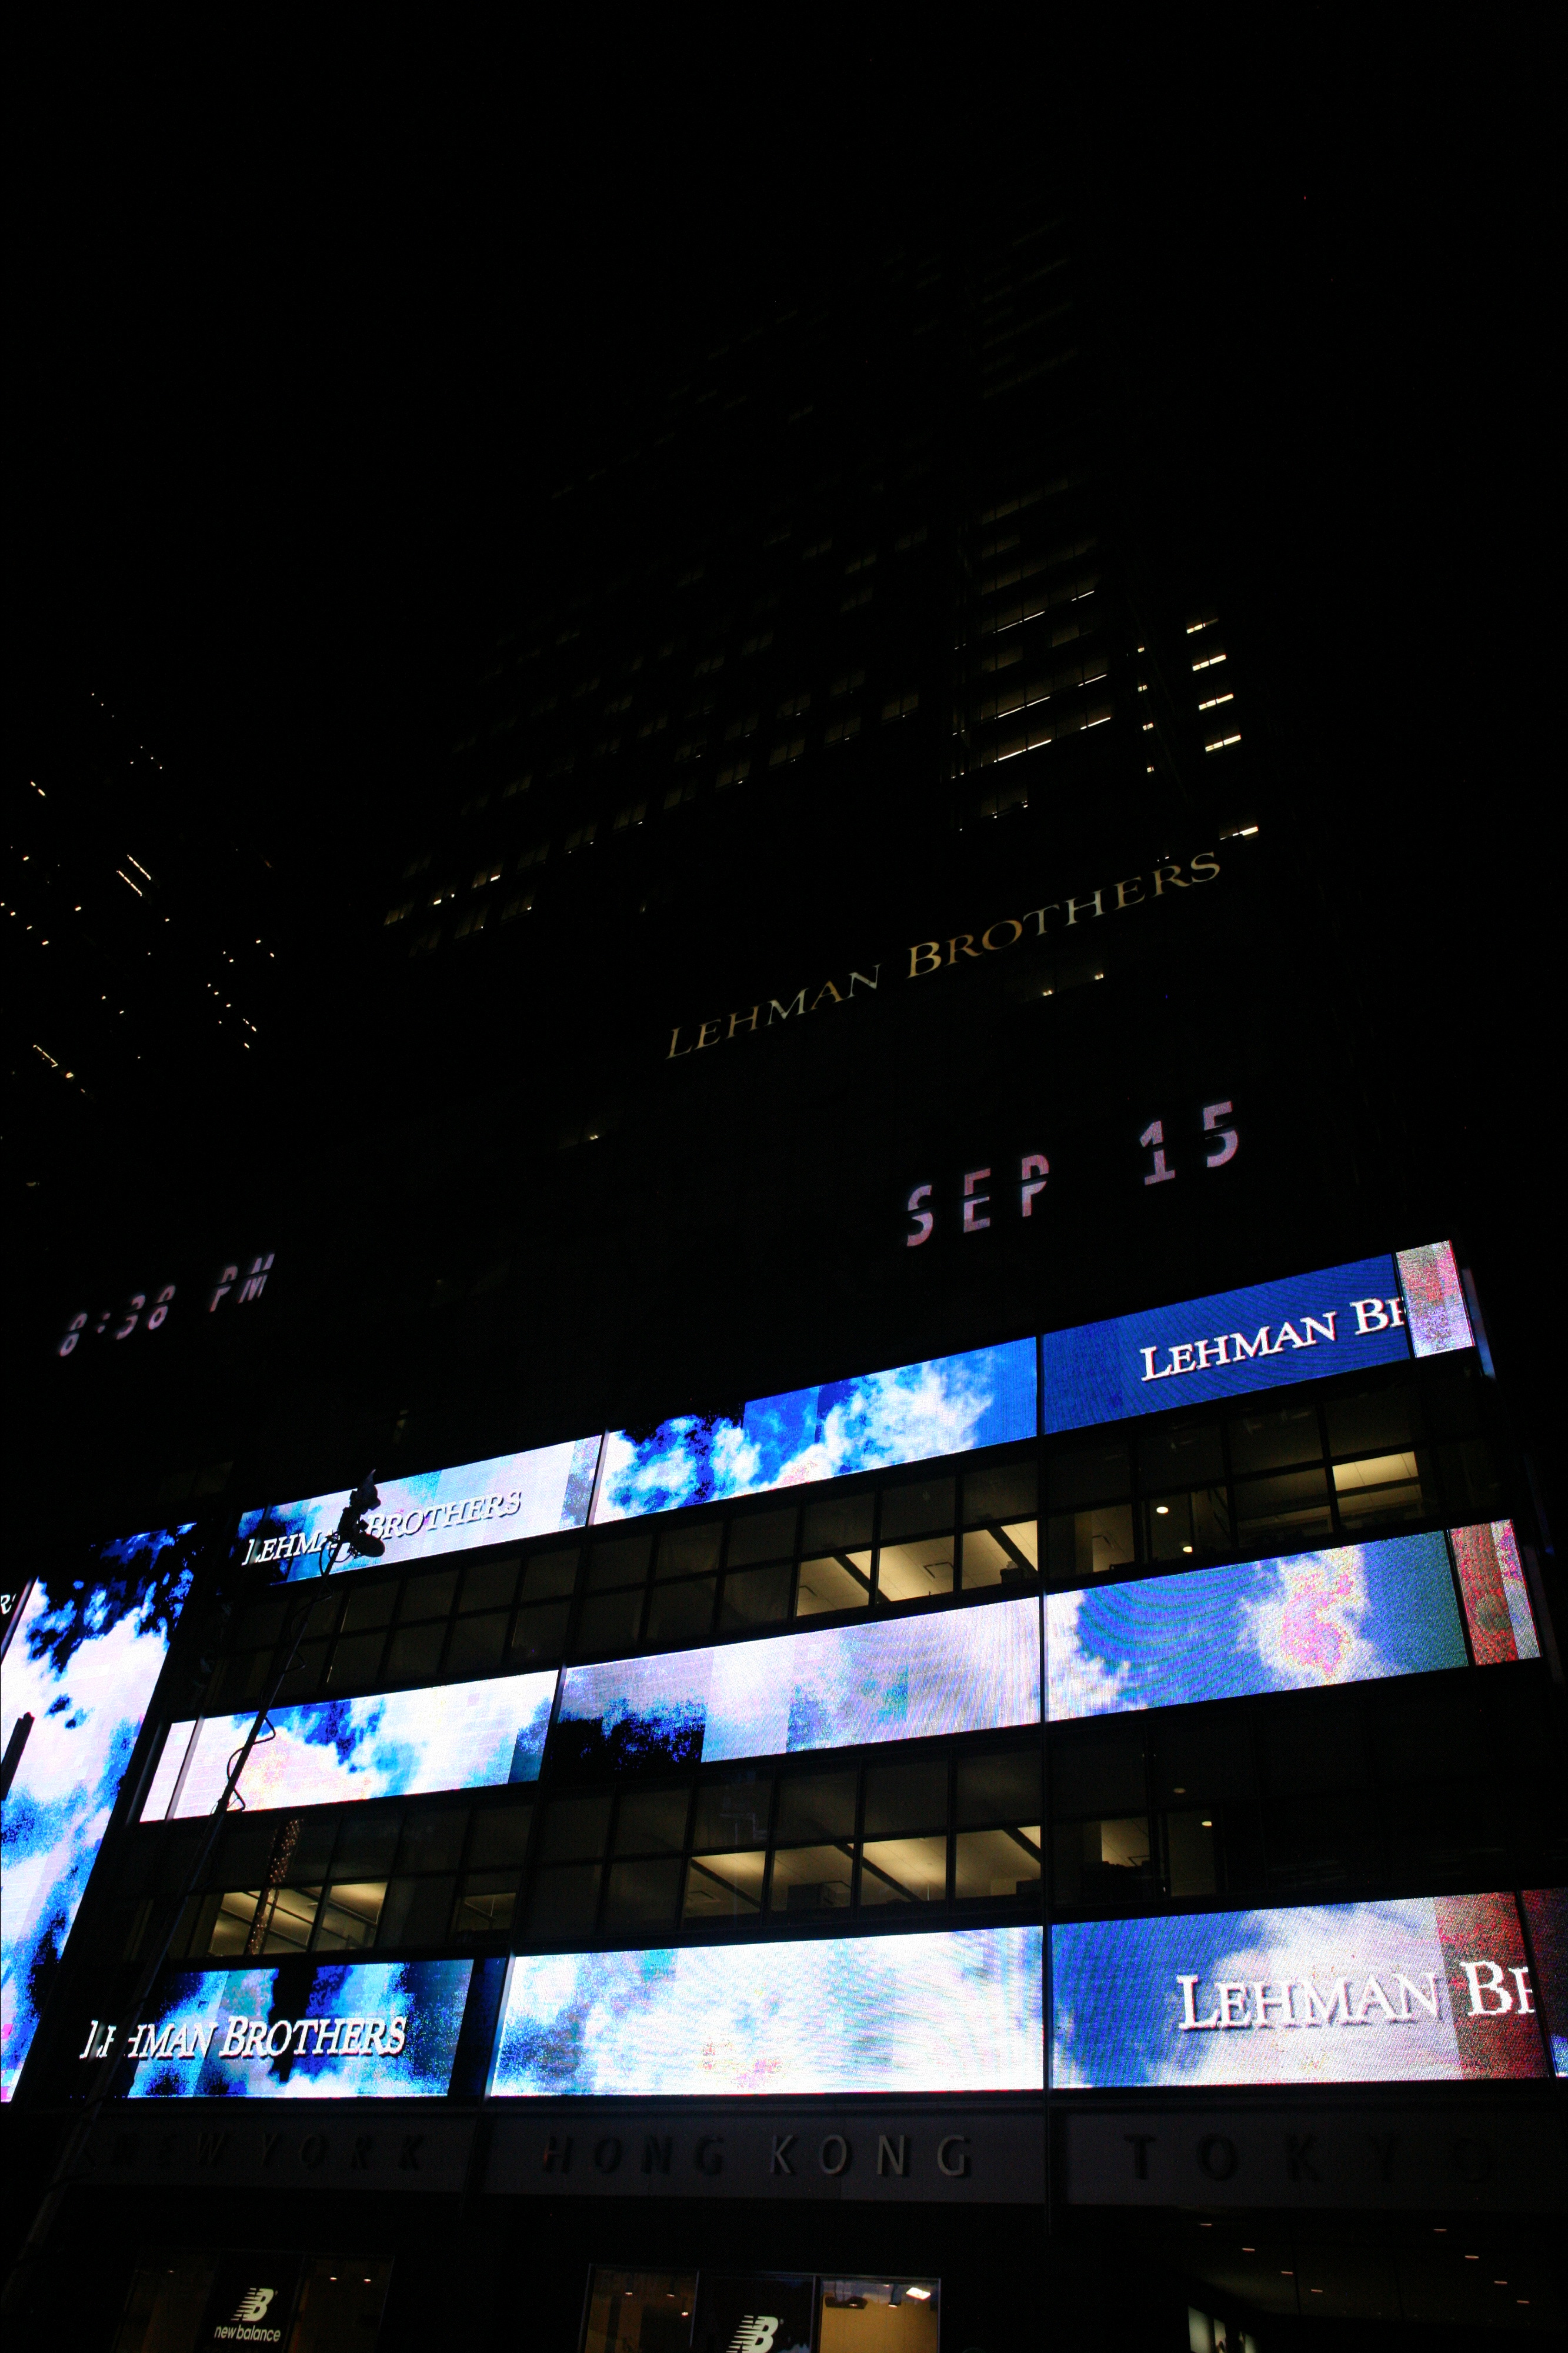 Lehman Brothers hovedkvarter i New York City 15. september 2008